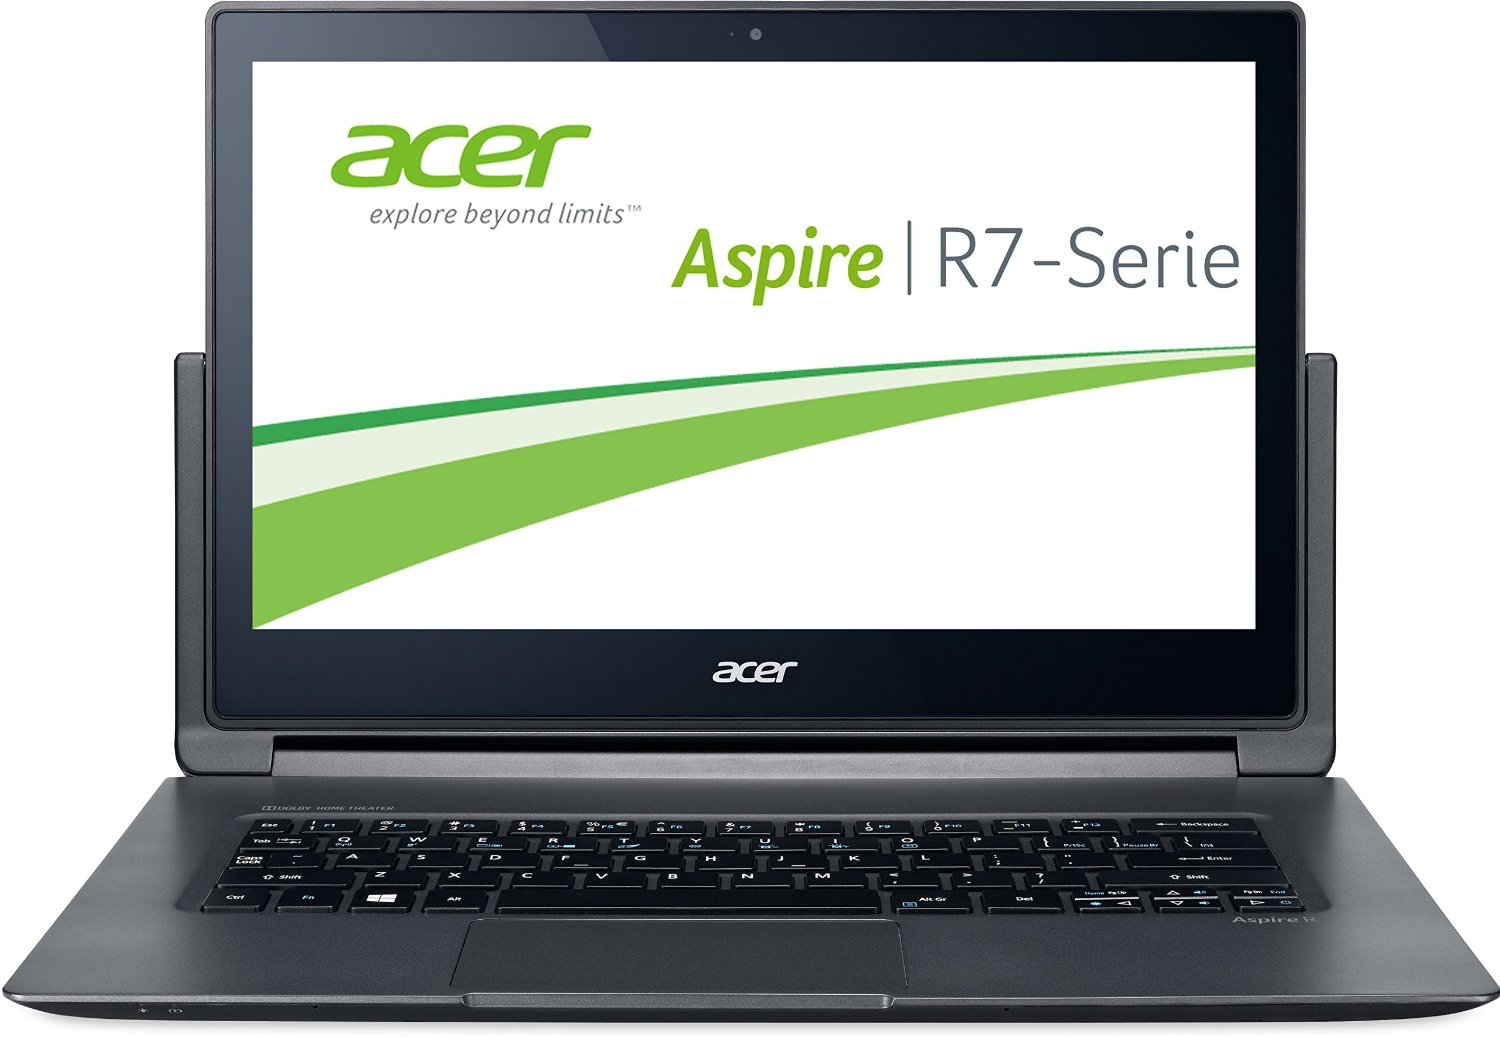 Acer Extensa 4210 Notebook Bison Camera Windows 8 X64 Driver Download